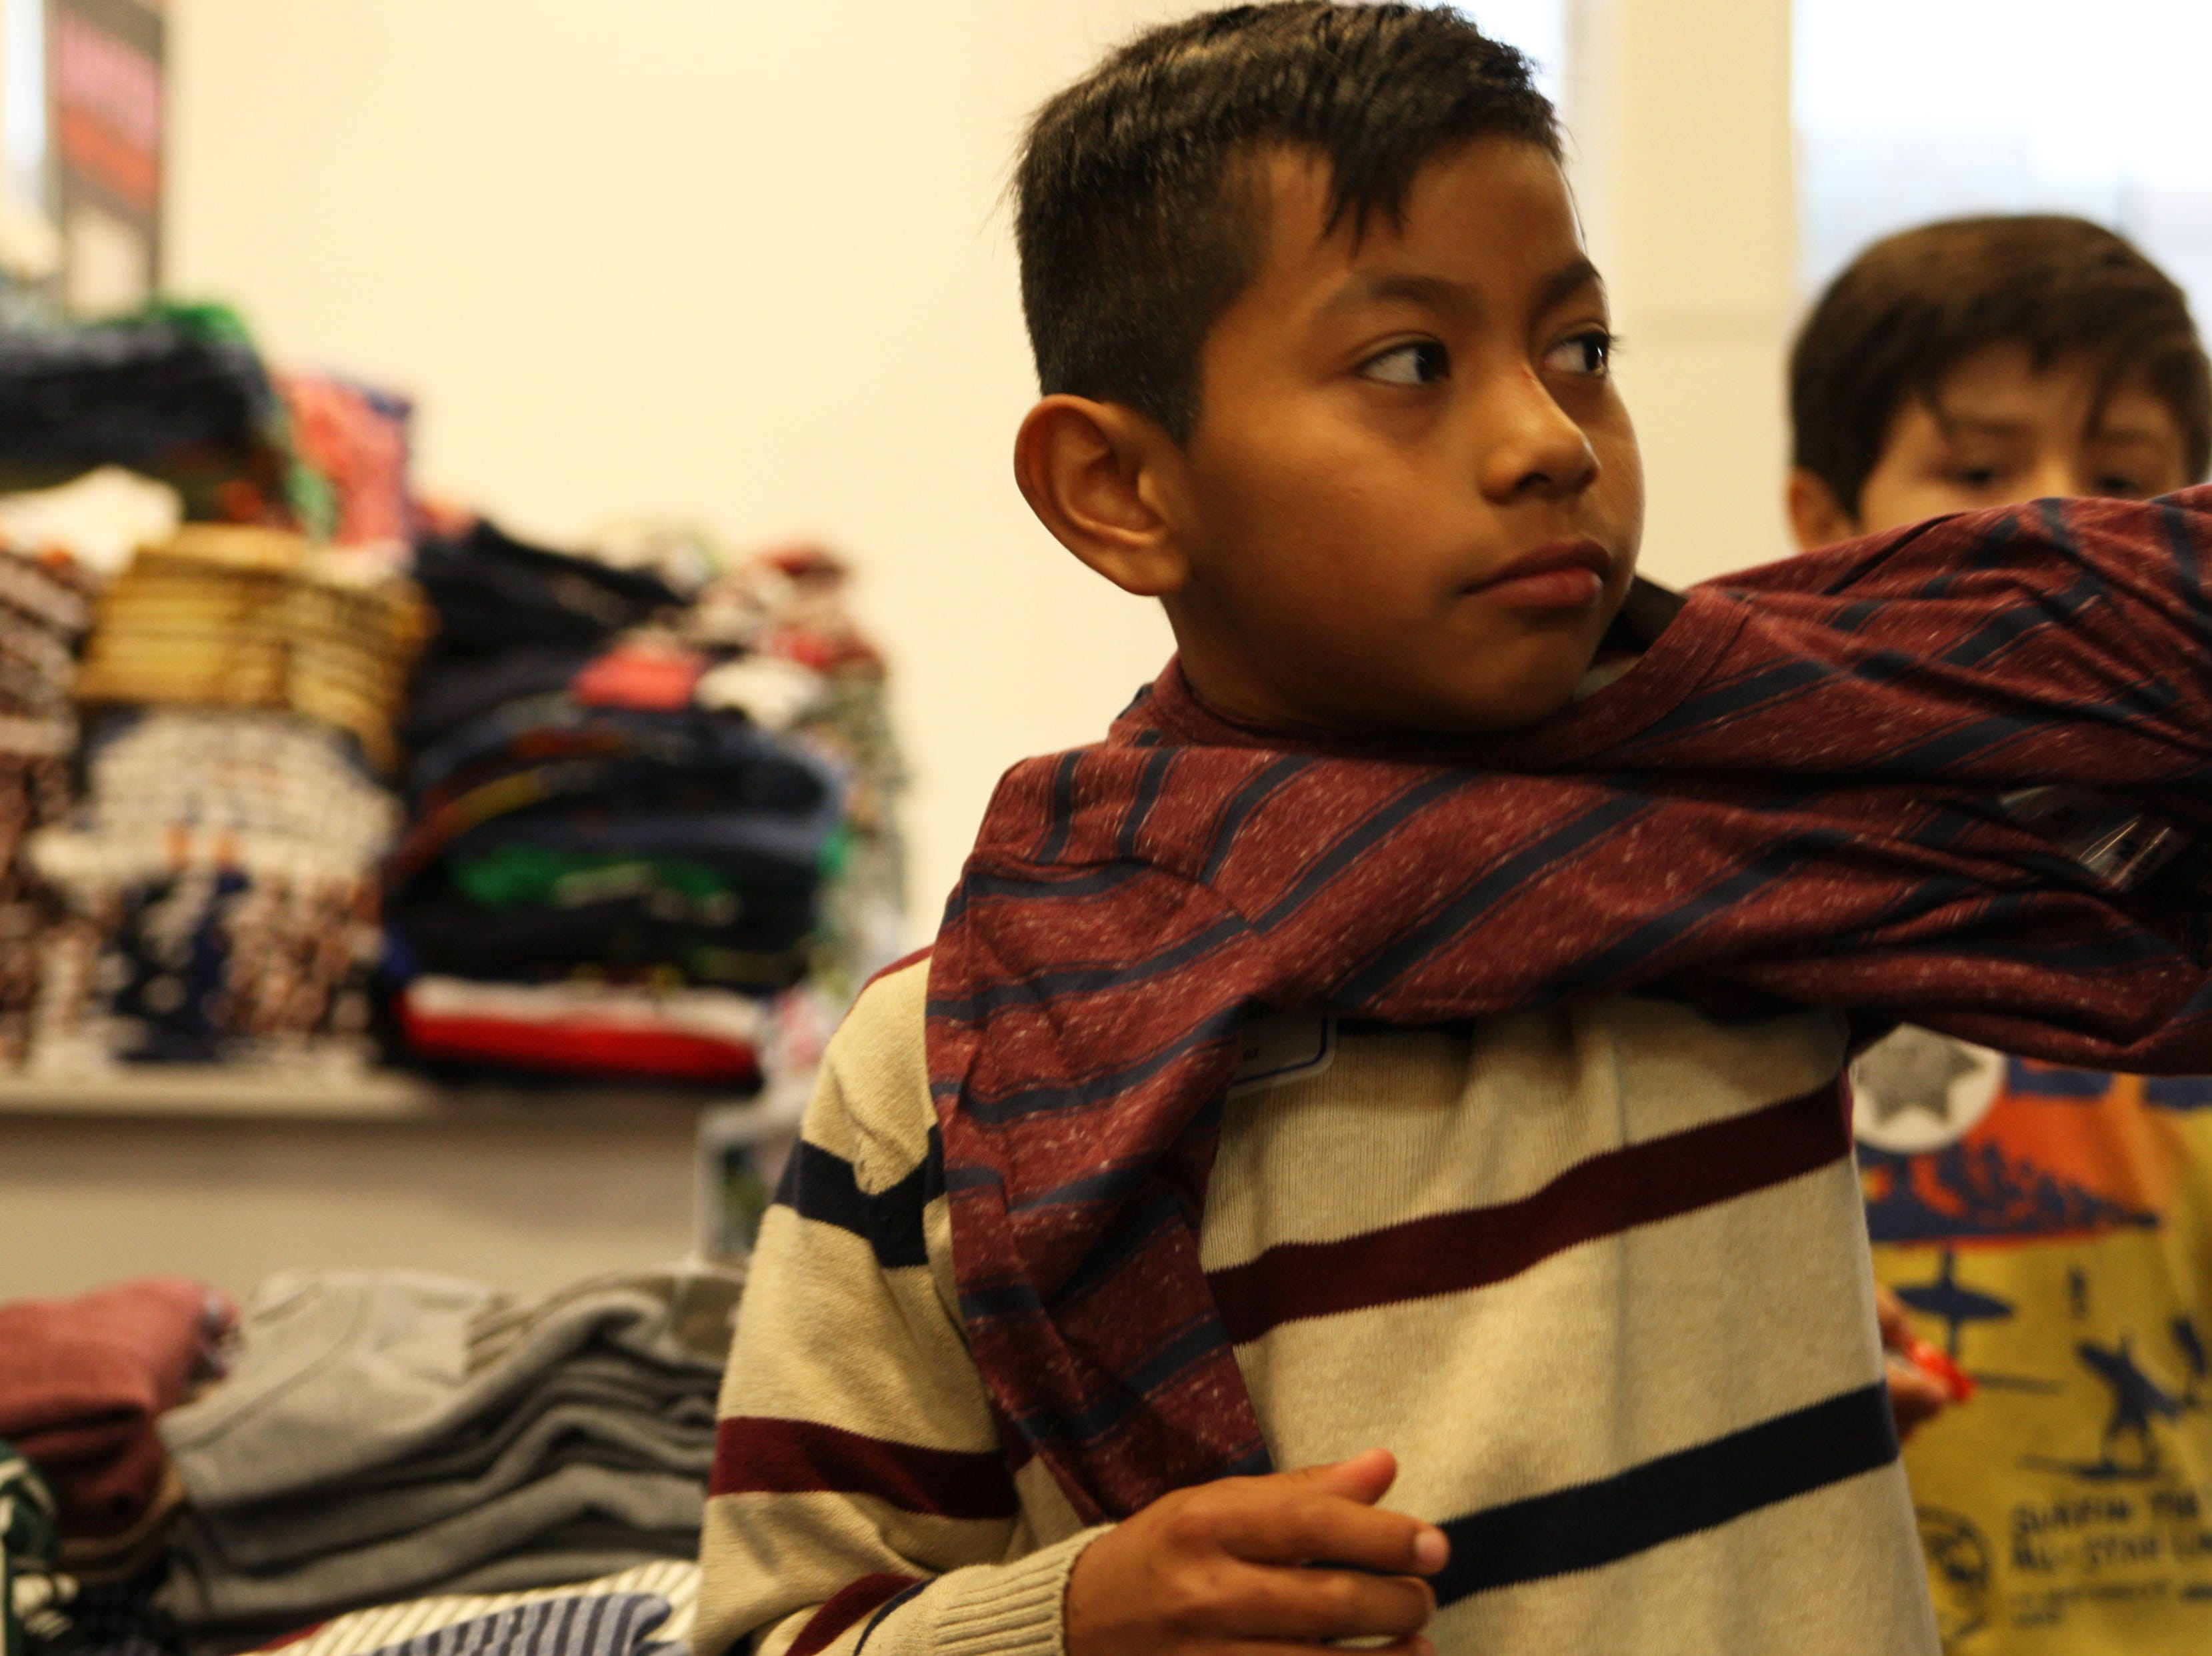 Jose Mendez tries on a long-sleeved shirt Saturday at the Children's Shopping Tour. Jose was given $100 by the Salinas Valley Chamber of Commerce to supplement a winter wardrobe.